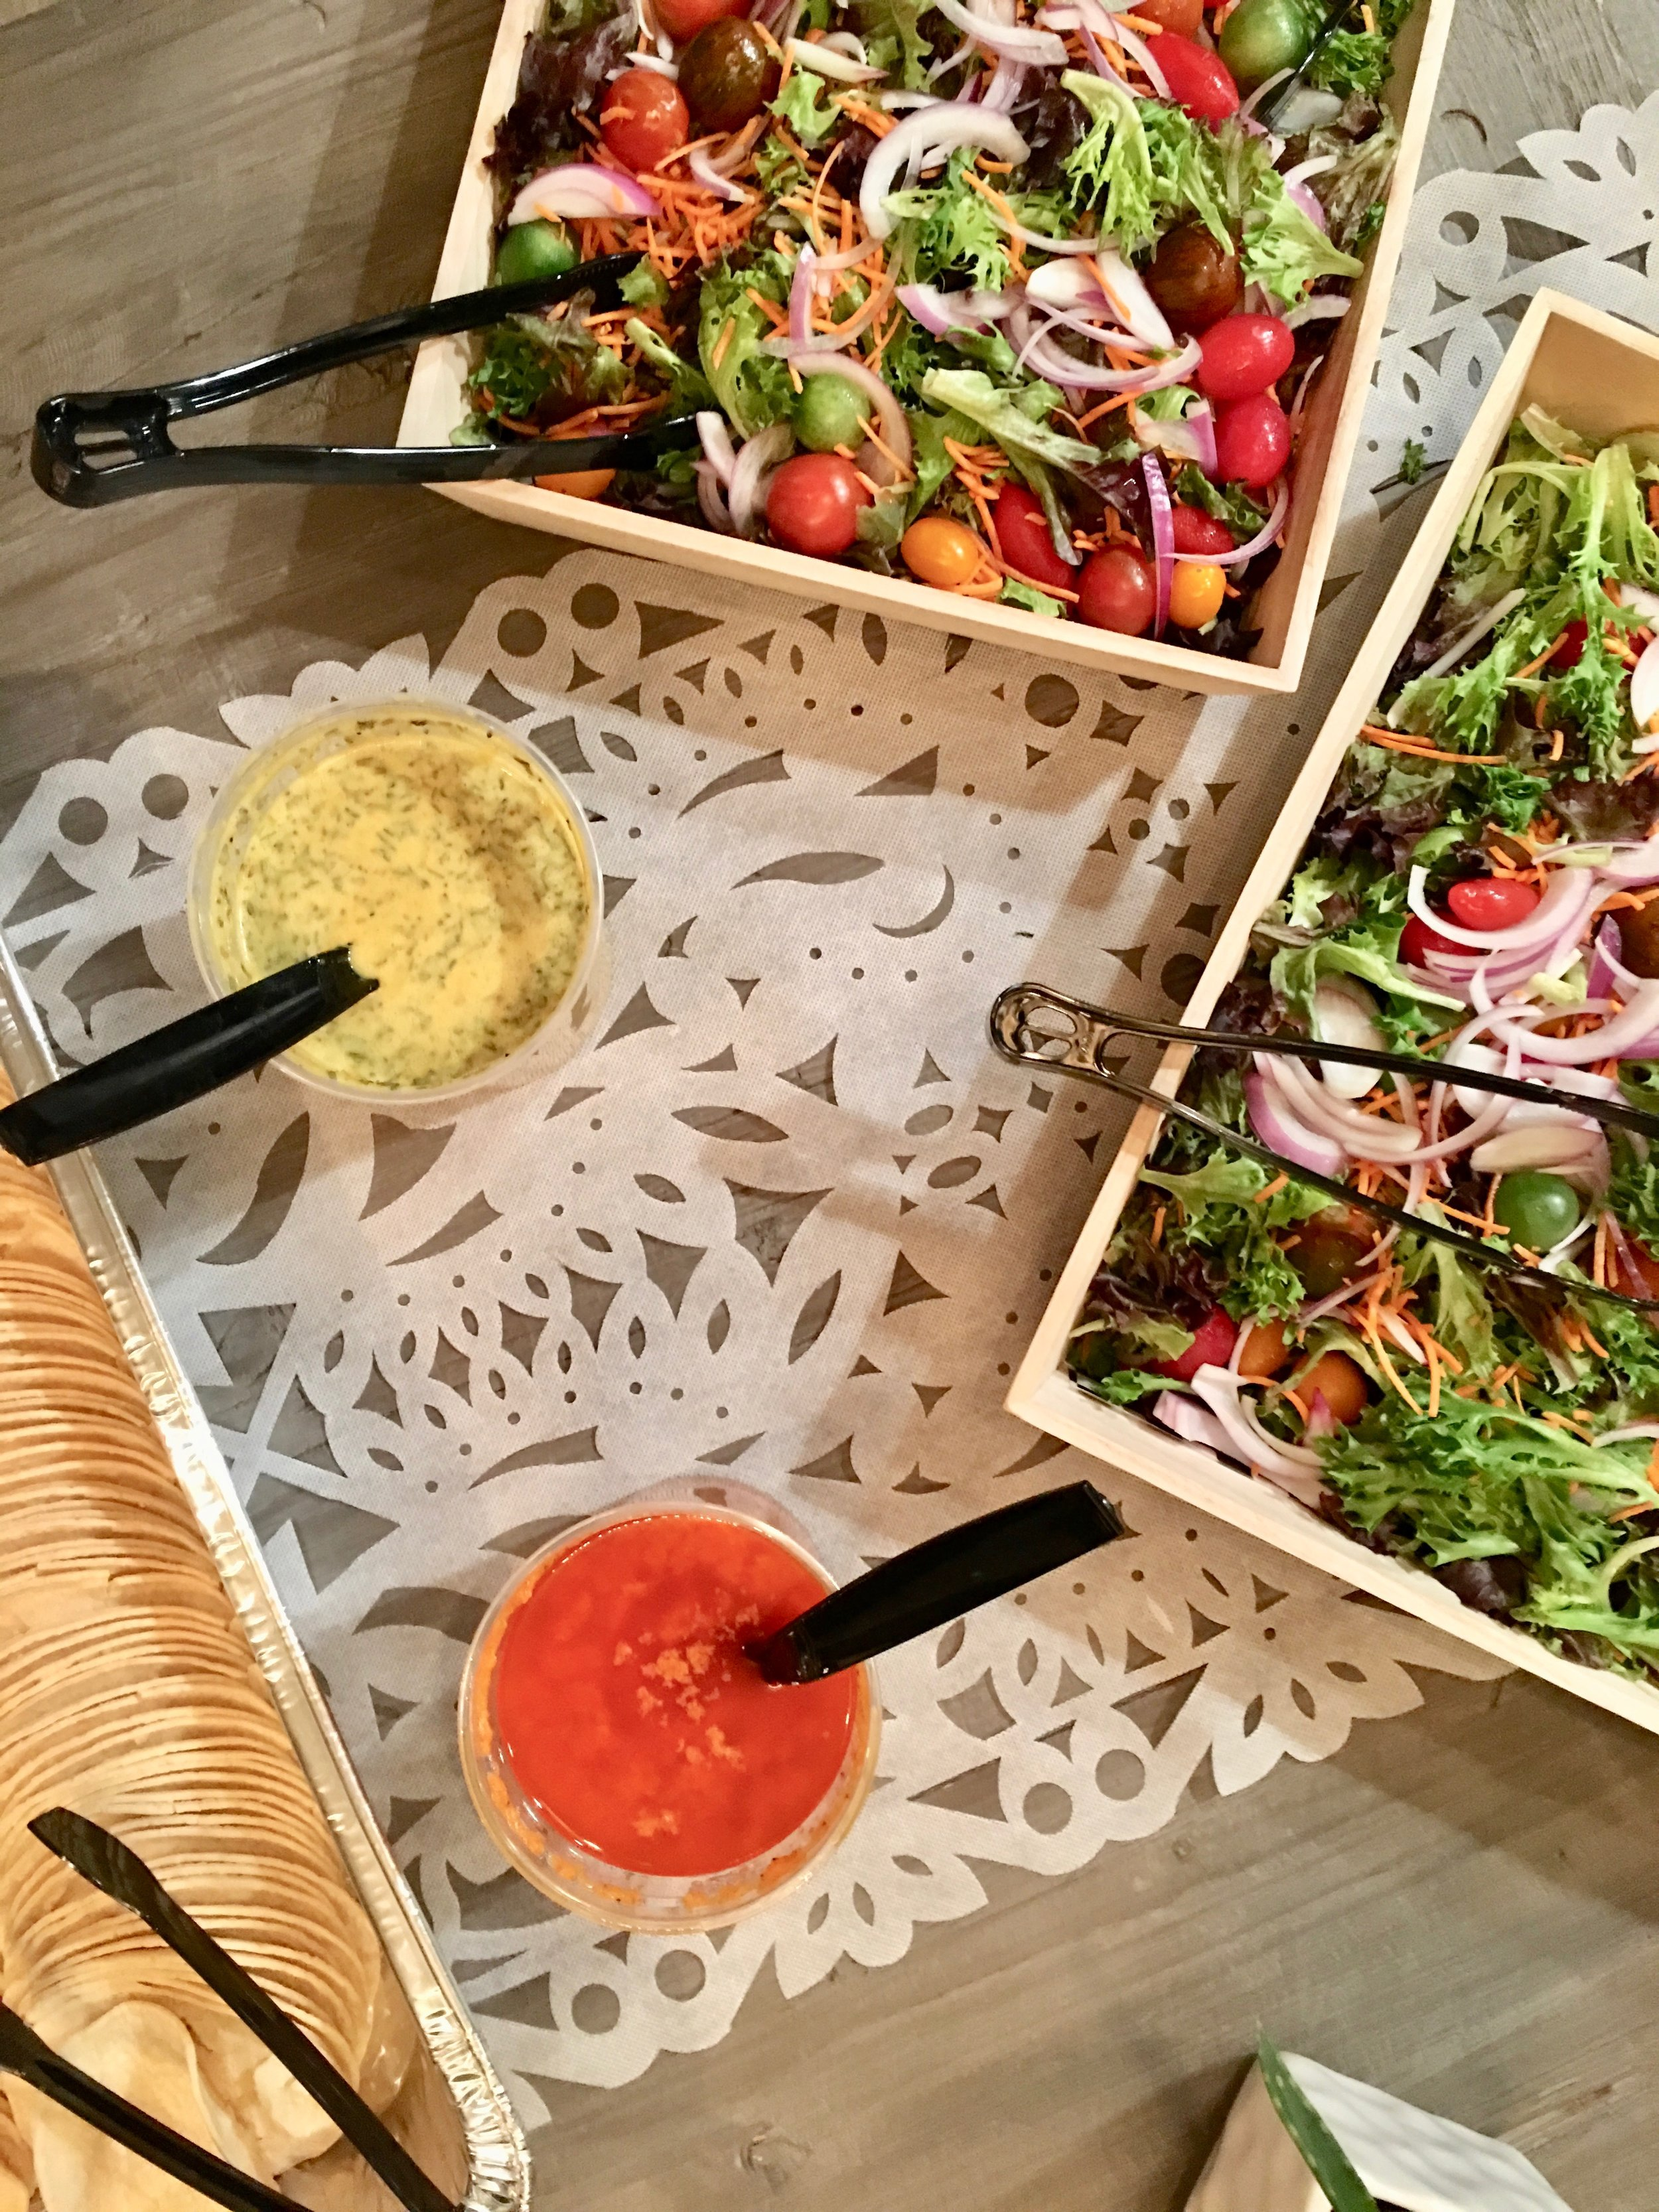 Chic Mexican Fiesta salad and tortillas